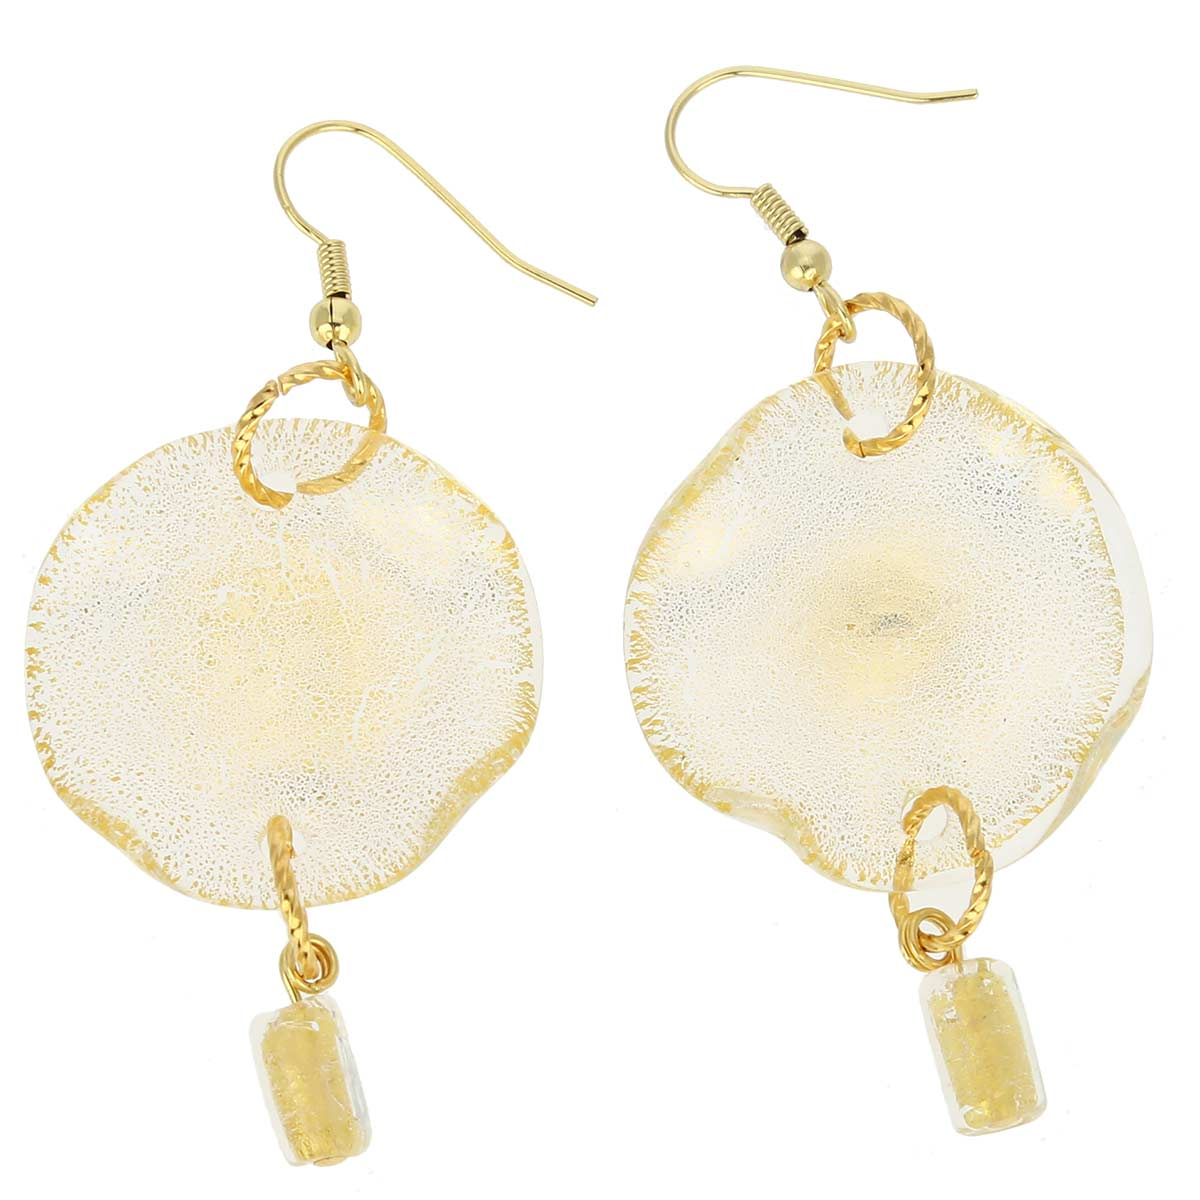 Aria Veneziana earrings - Gold